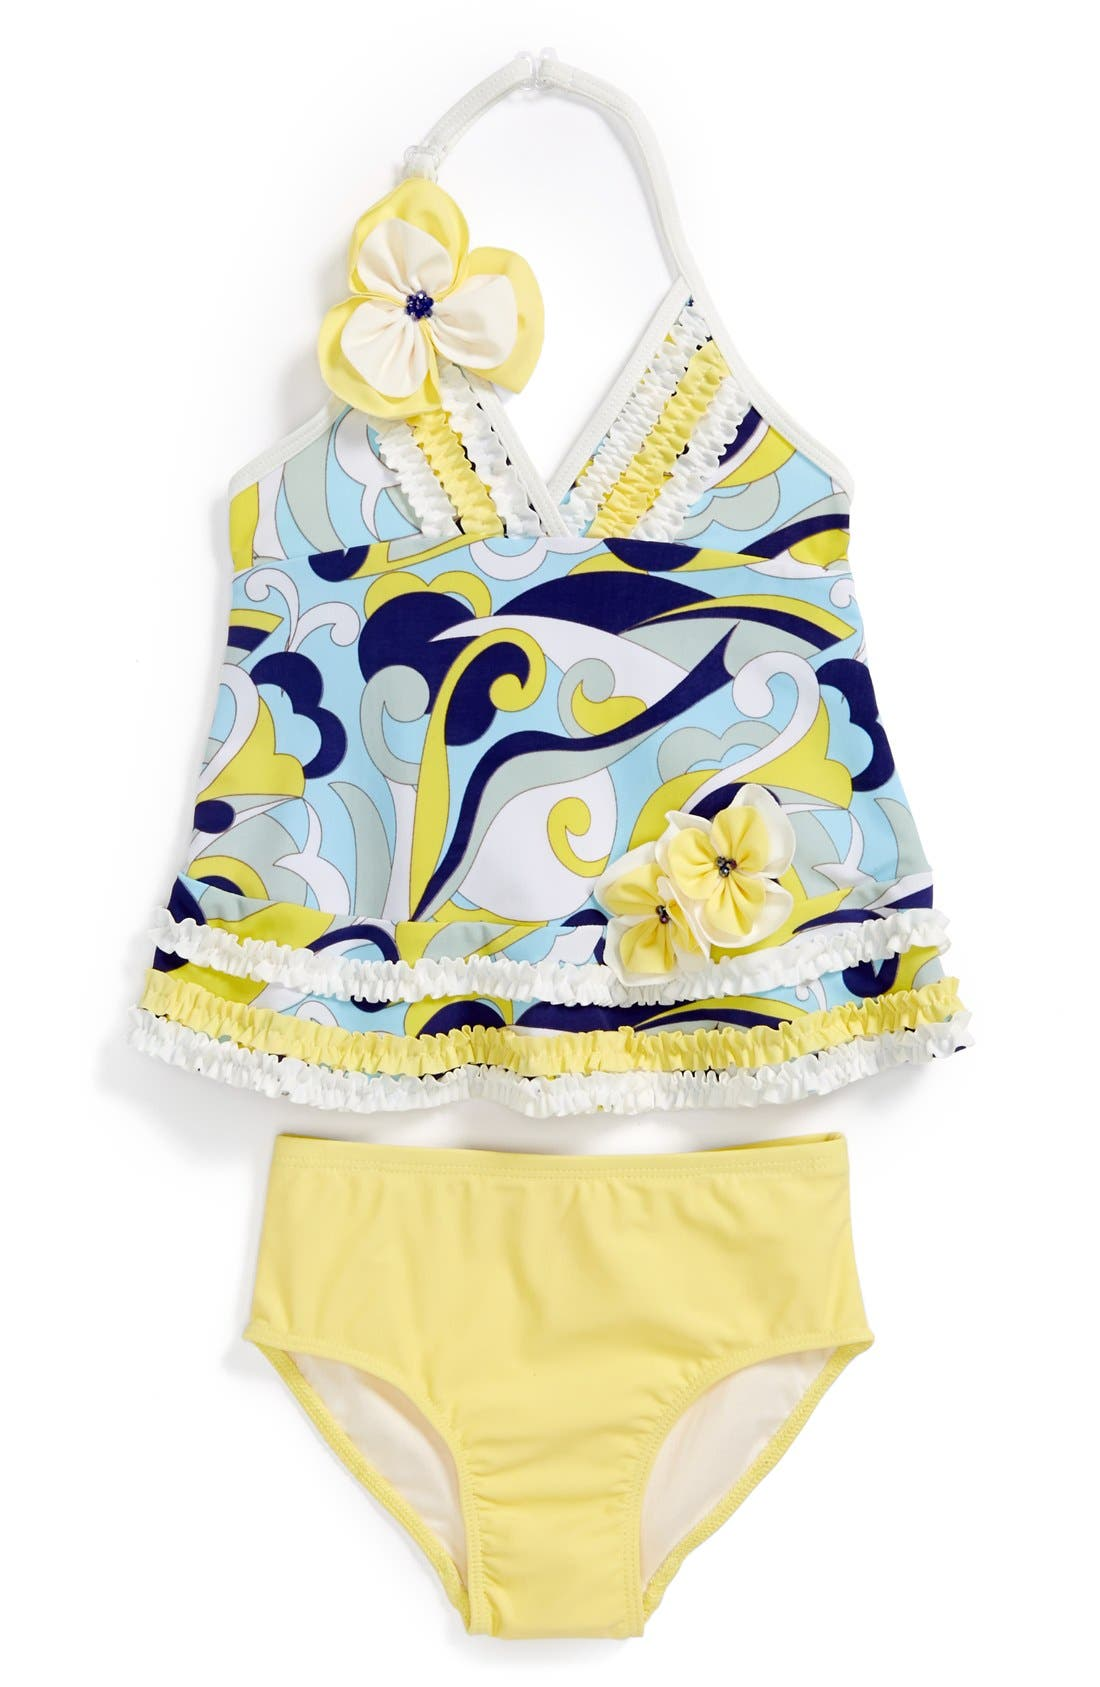 Alternate Image 1 Selected - Isobella & Chloe 'Caribbean Current' Two-Piece Swimsuit (Toddler Girls)